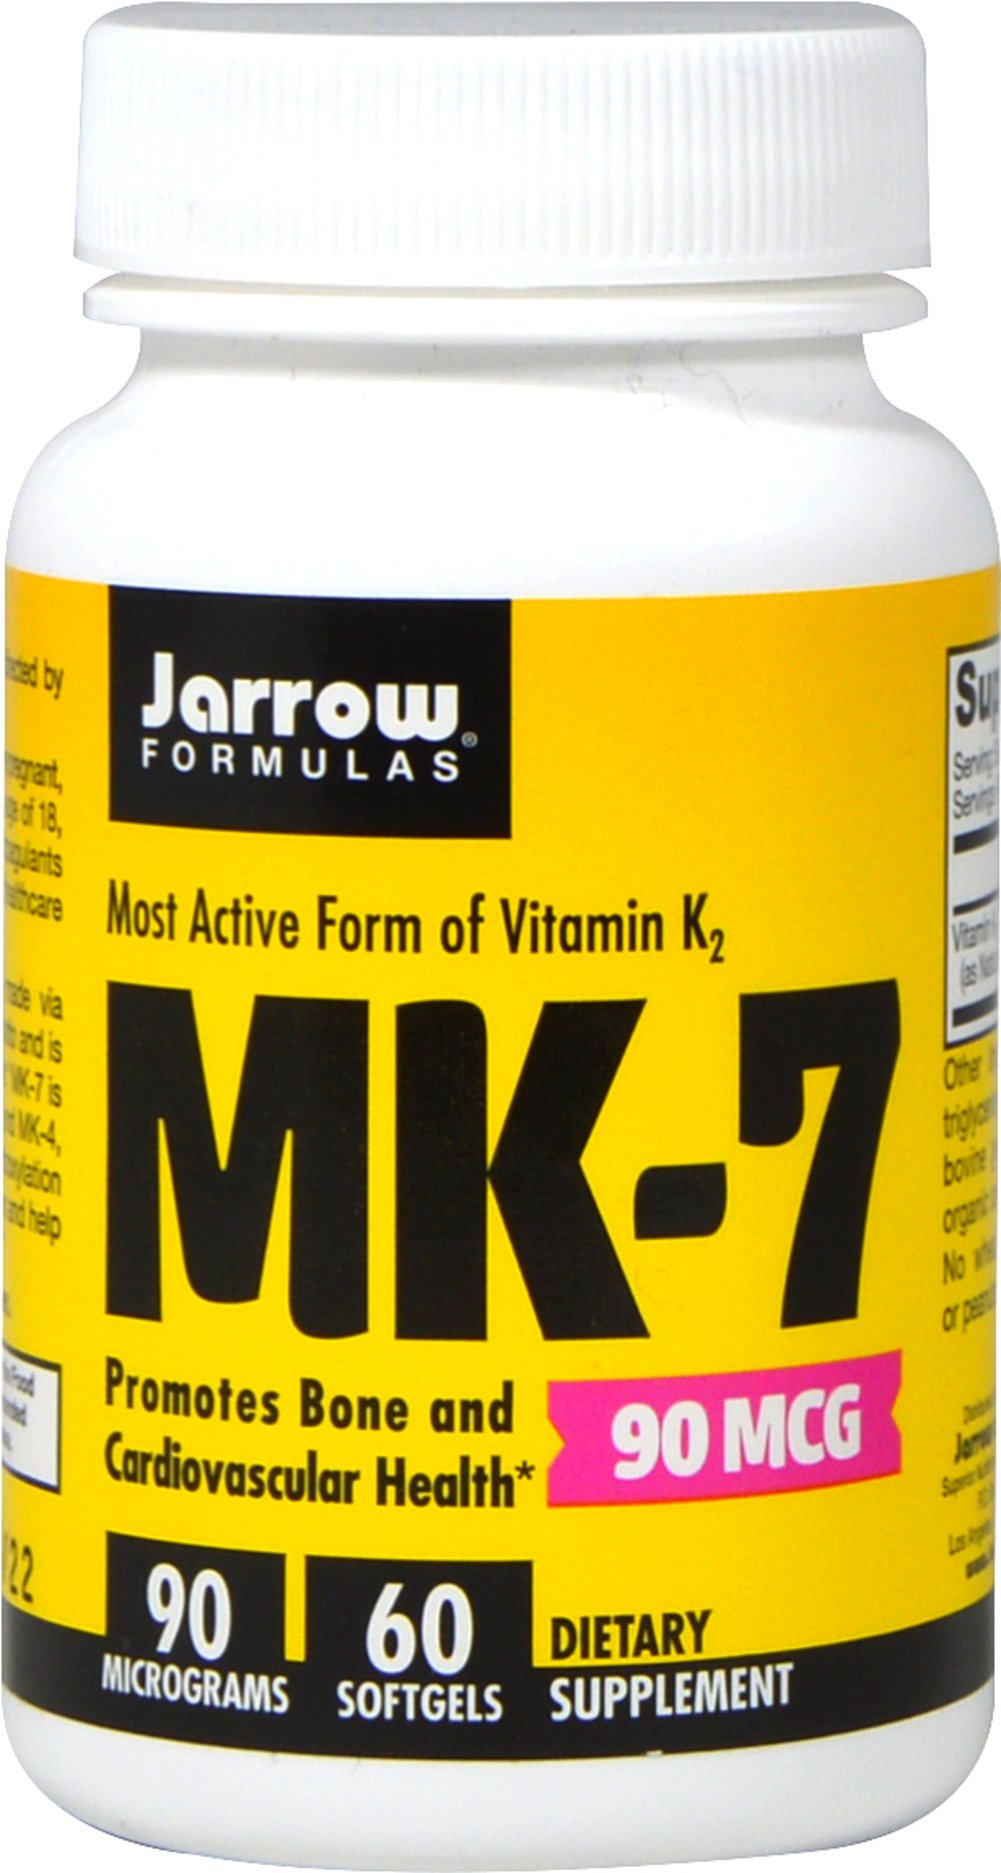 MK-7 Vitamin K2 90 mcg <p><strong>From the Manufacturer's Label:</strong></p><p>MK-7 is made via fermentation by Bacillus subtilus natto.  MK-7 (Menaquinone-7) is an enhanced bioactive form of vitamin K2 from Natto that is ten times better absorbed than K1 from spinach. MK-7 is responsible for the carboxylation of specific bone proteins needed for building bone.**Also, MK-7 promotes cardiovascular health by helping to maintain arterial elasticity.**</p>&lt